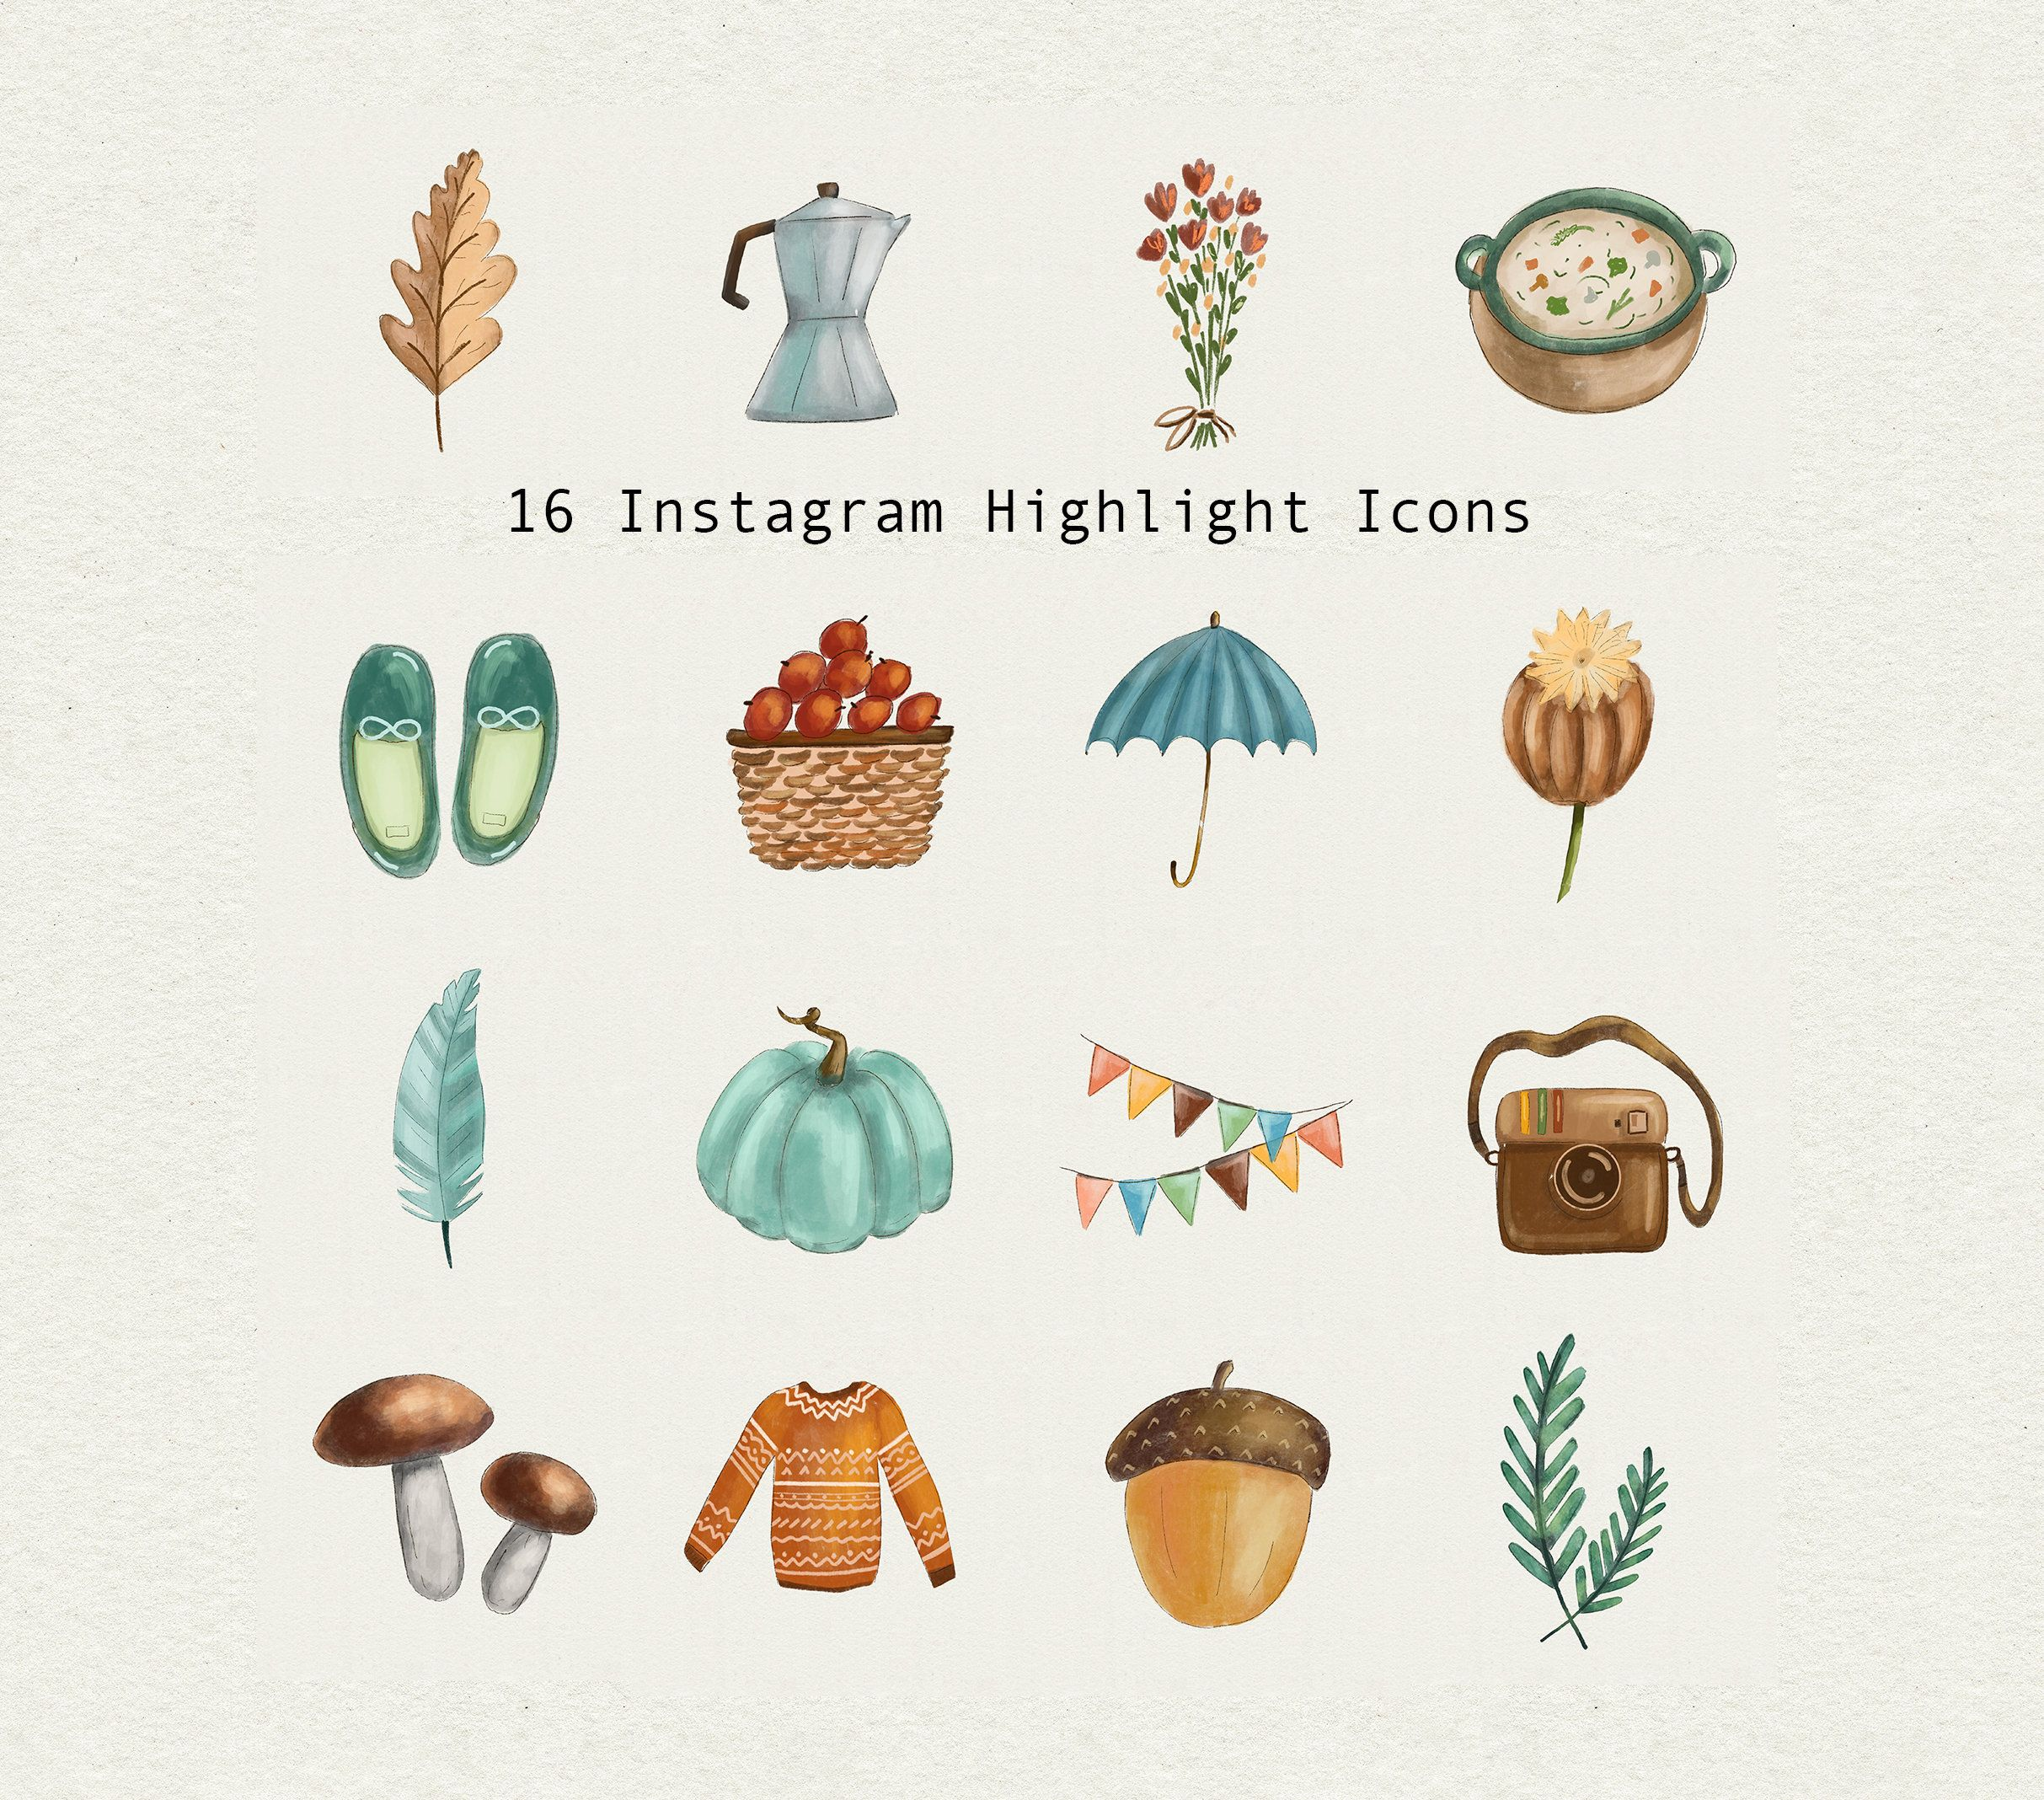 Autumn tea Instagram icons boho style Highlight story watercolor boho style cozy nature cute herbs Flowers cakes